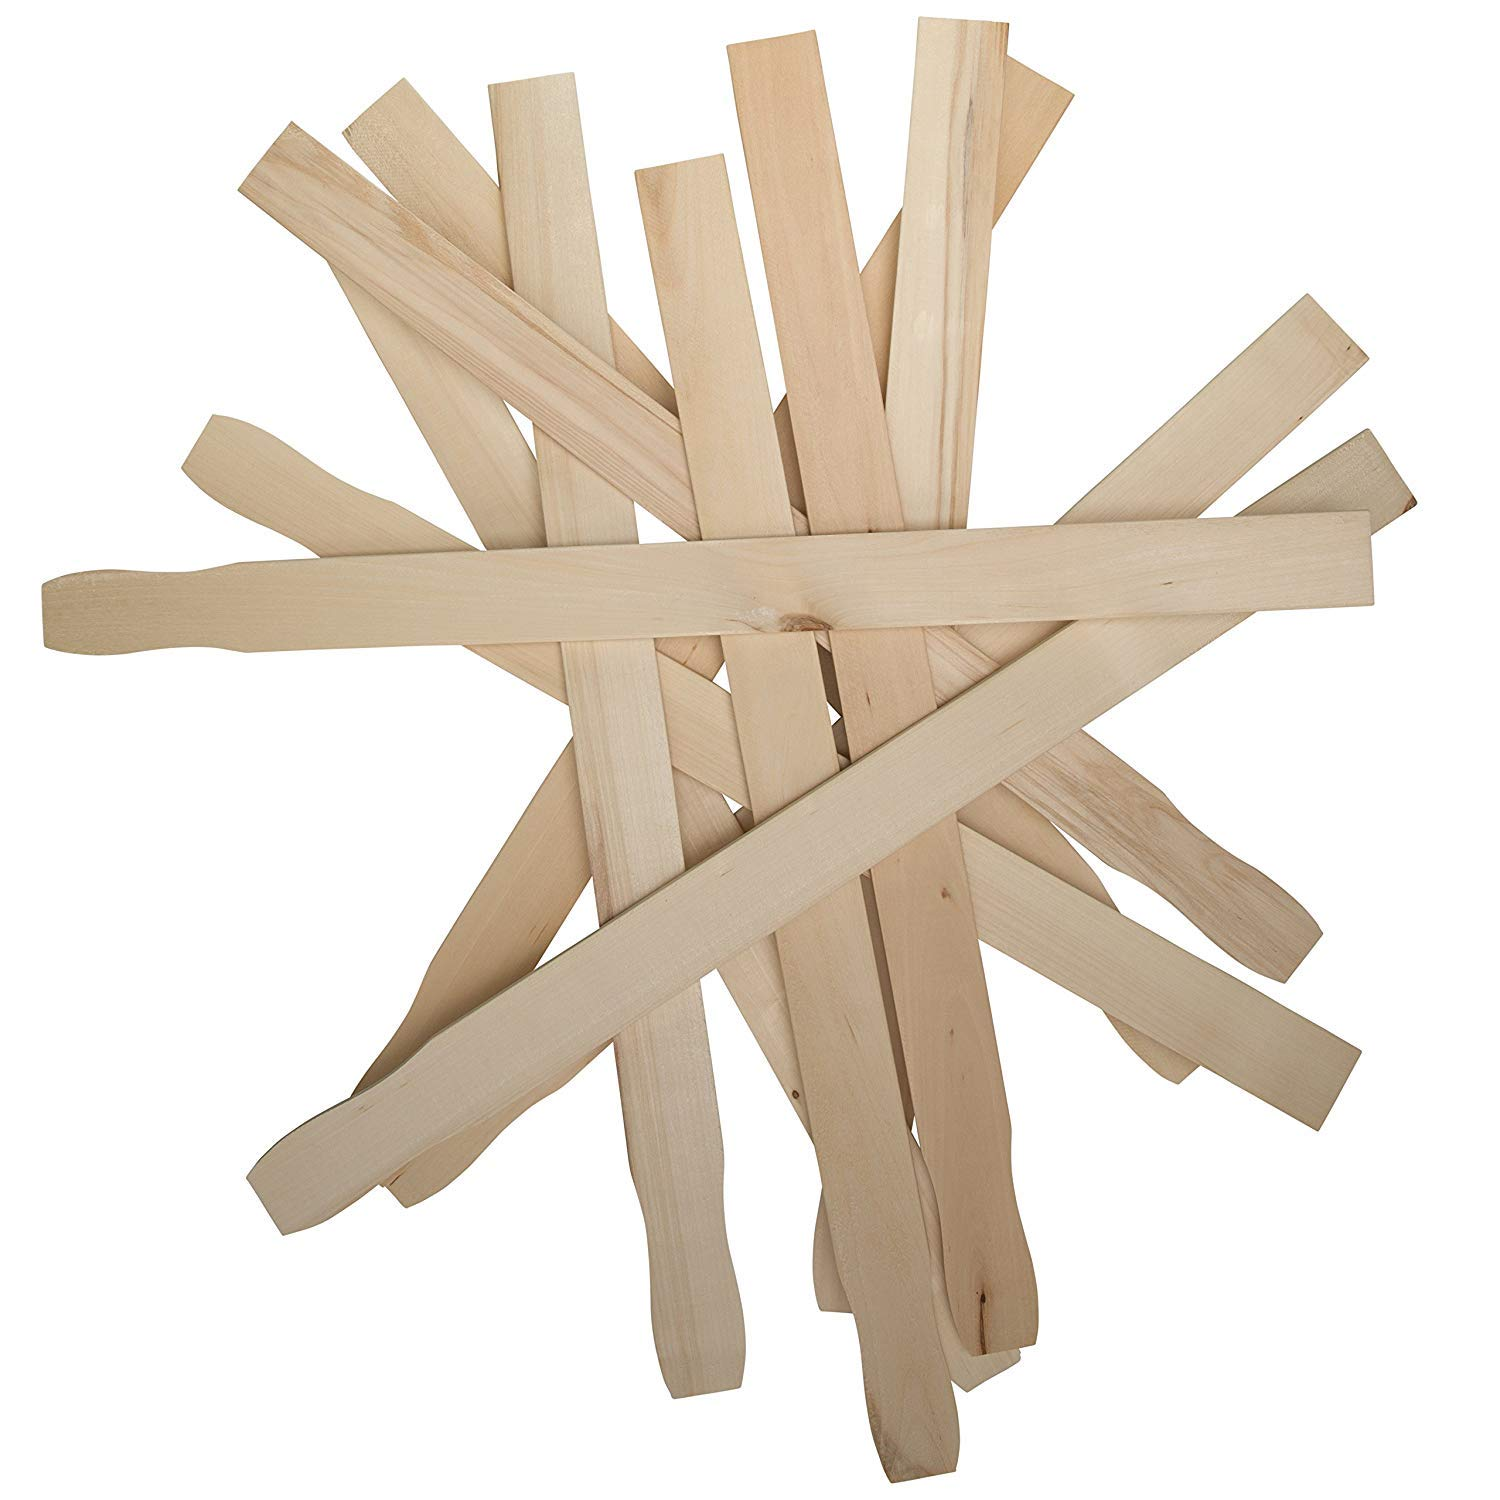 Mix Epoxy Box of 50 Sanded Hardwood Paint Stirrers for Wax Garden and Library Markers by Woodpeckers Resin or Kids Wood Crafts 9 Inch Paint Sticks